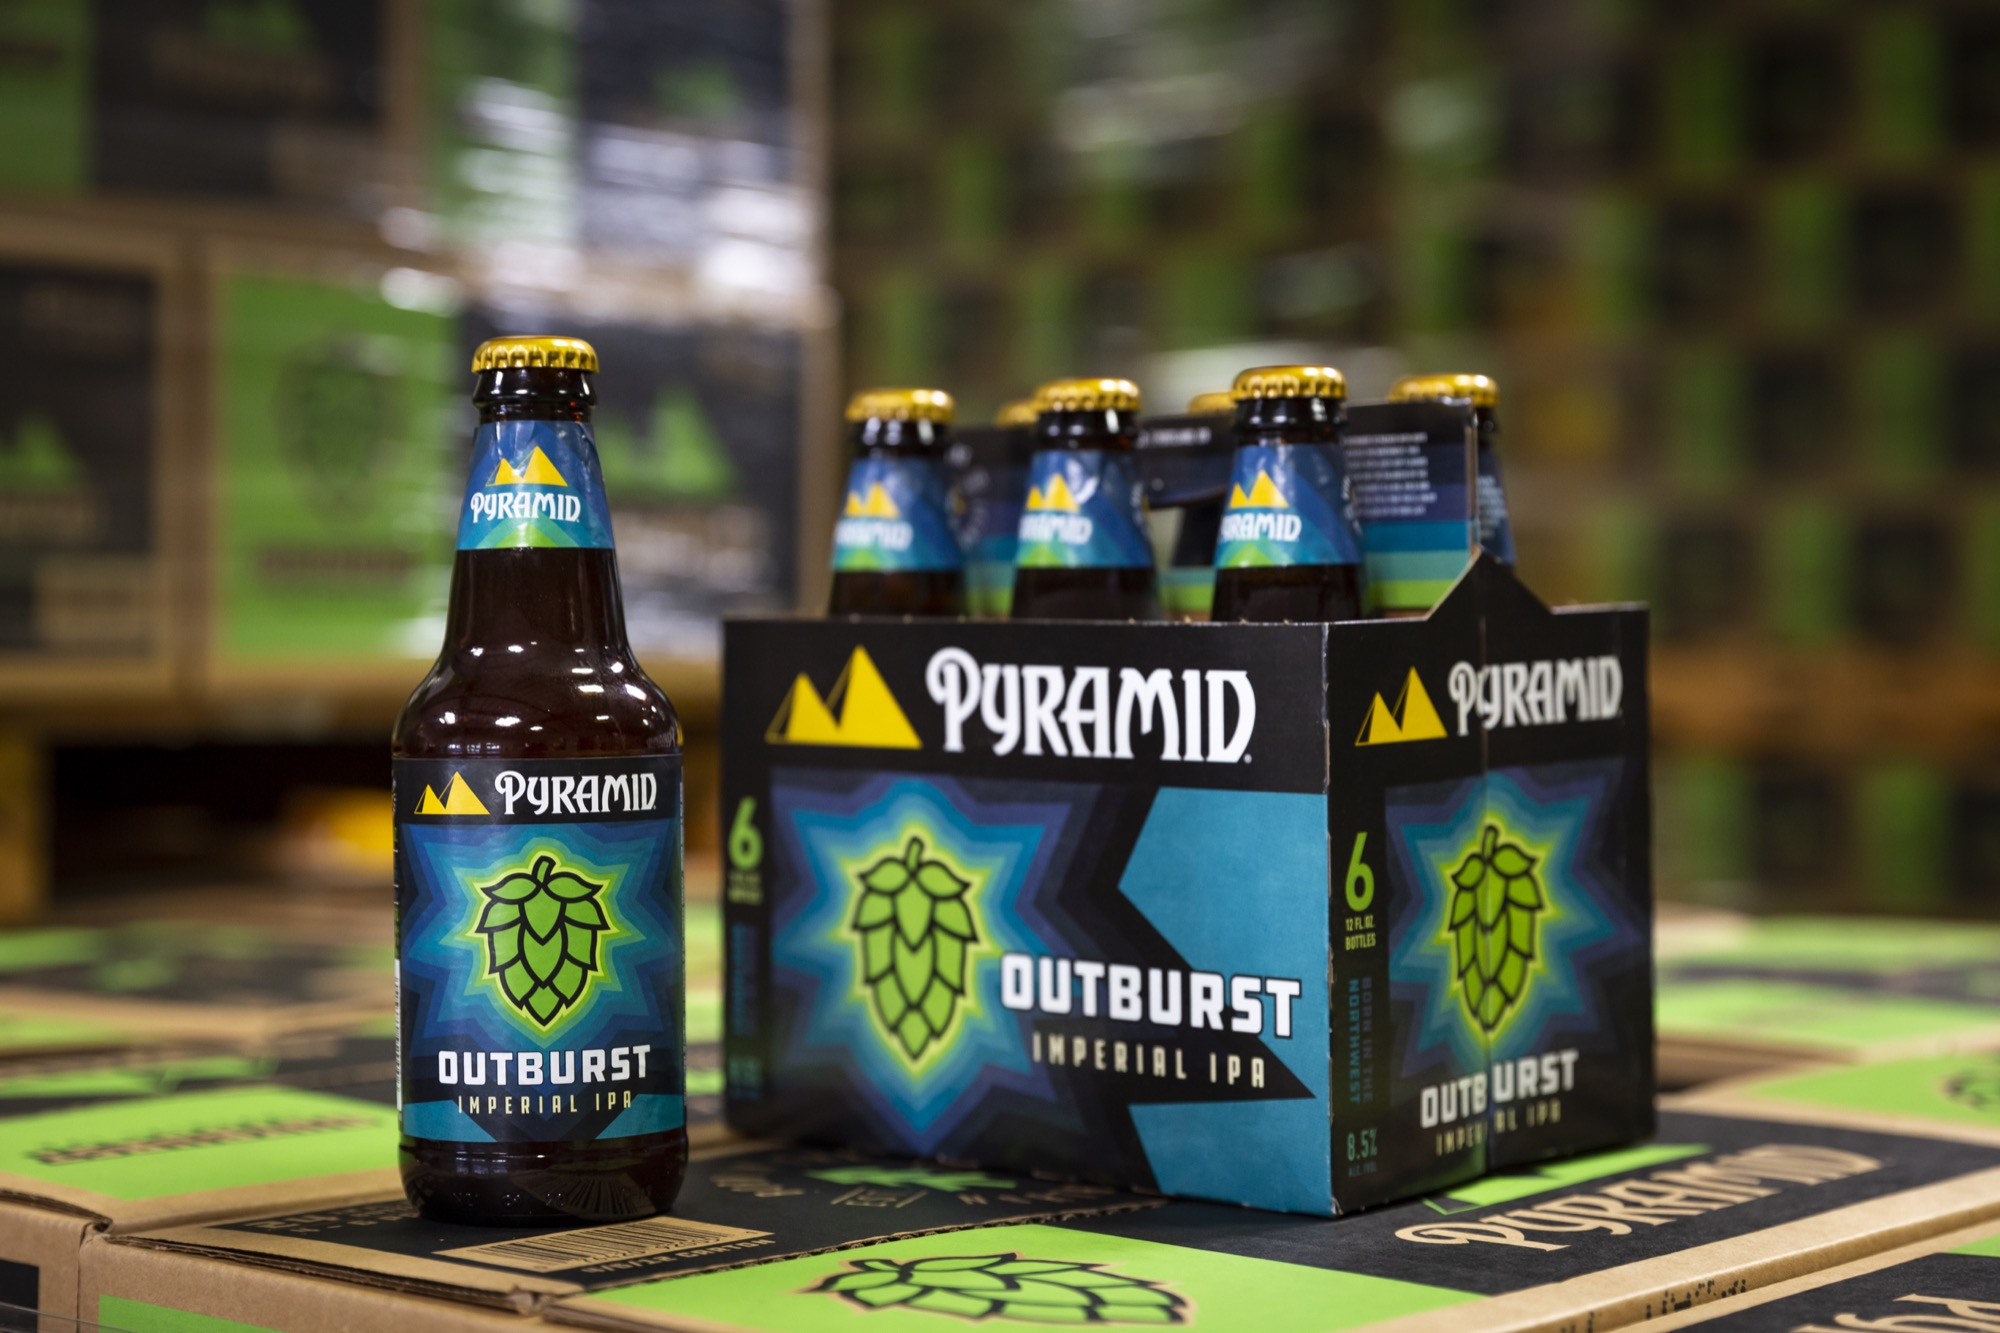 image of Outburst Imperial IPA courtesy of Pyramid Brewing